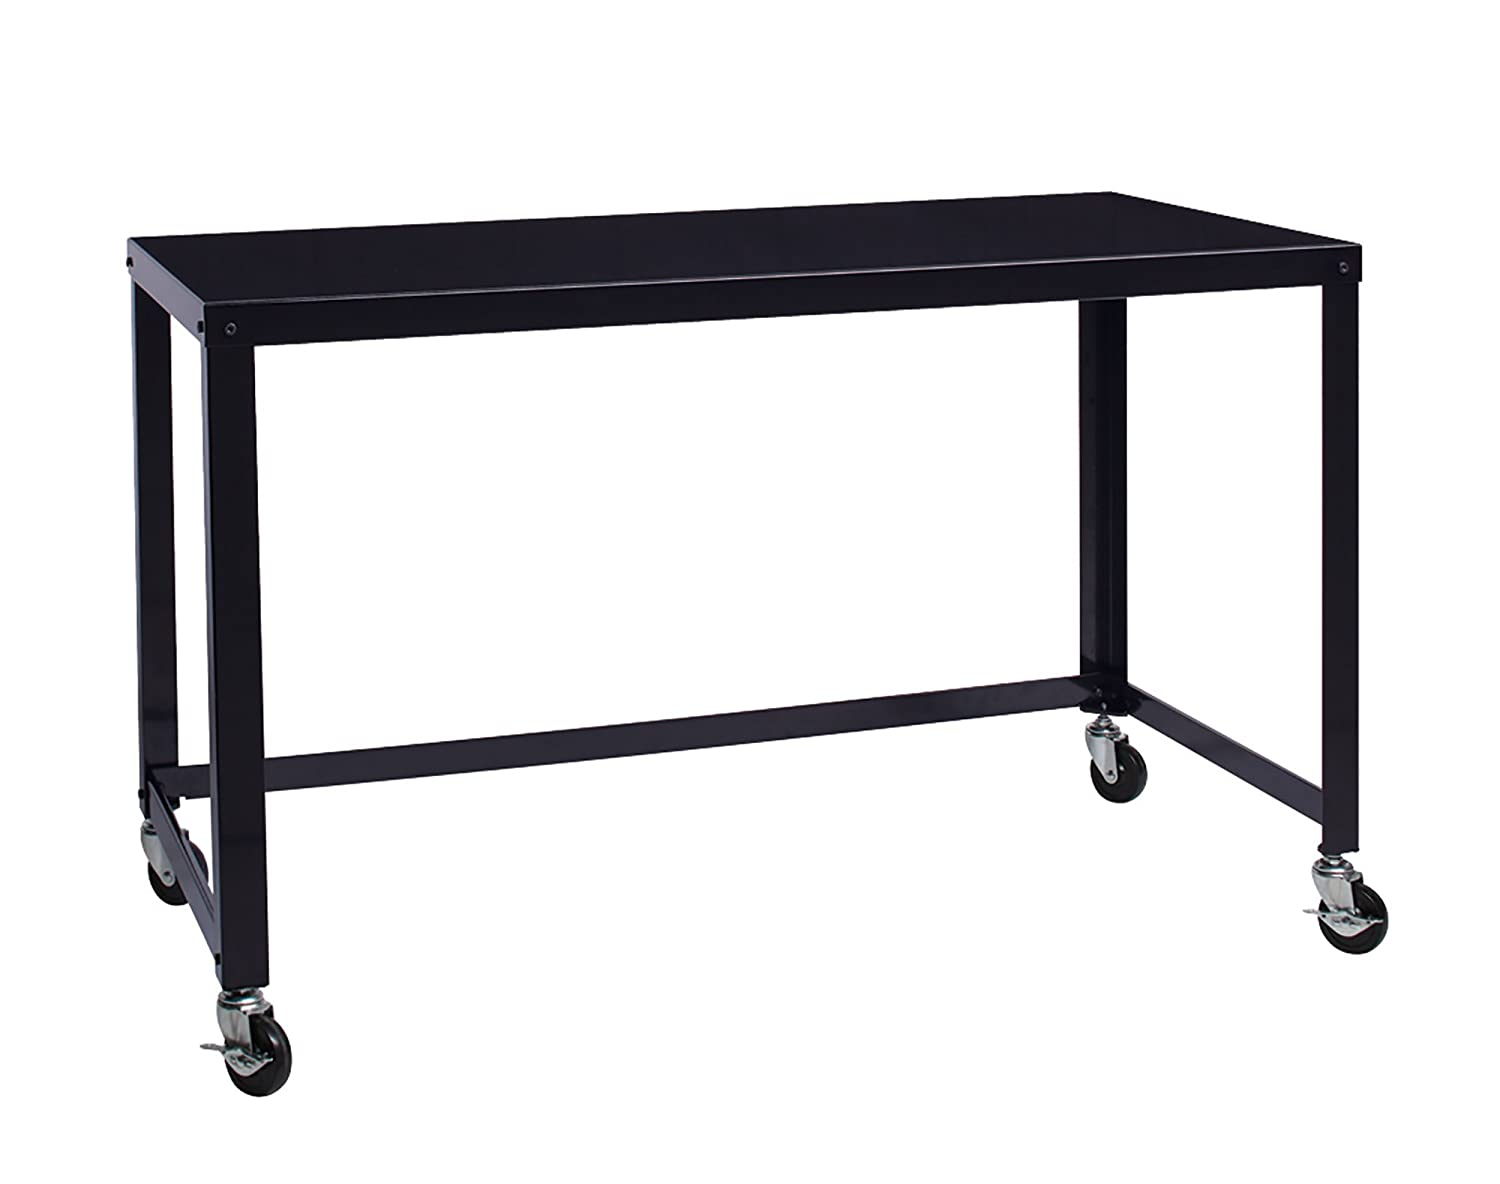 """Office Dimensions 21647 Black RTA 48"""" Wide Mobile Metal Desk Workstation Home Office Collection, 29.5"""" x 48"""" x 24"""""""